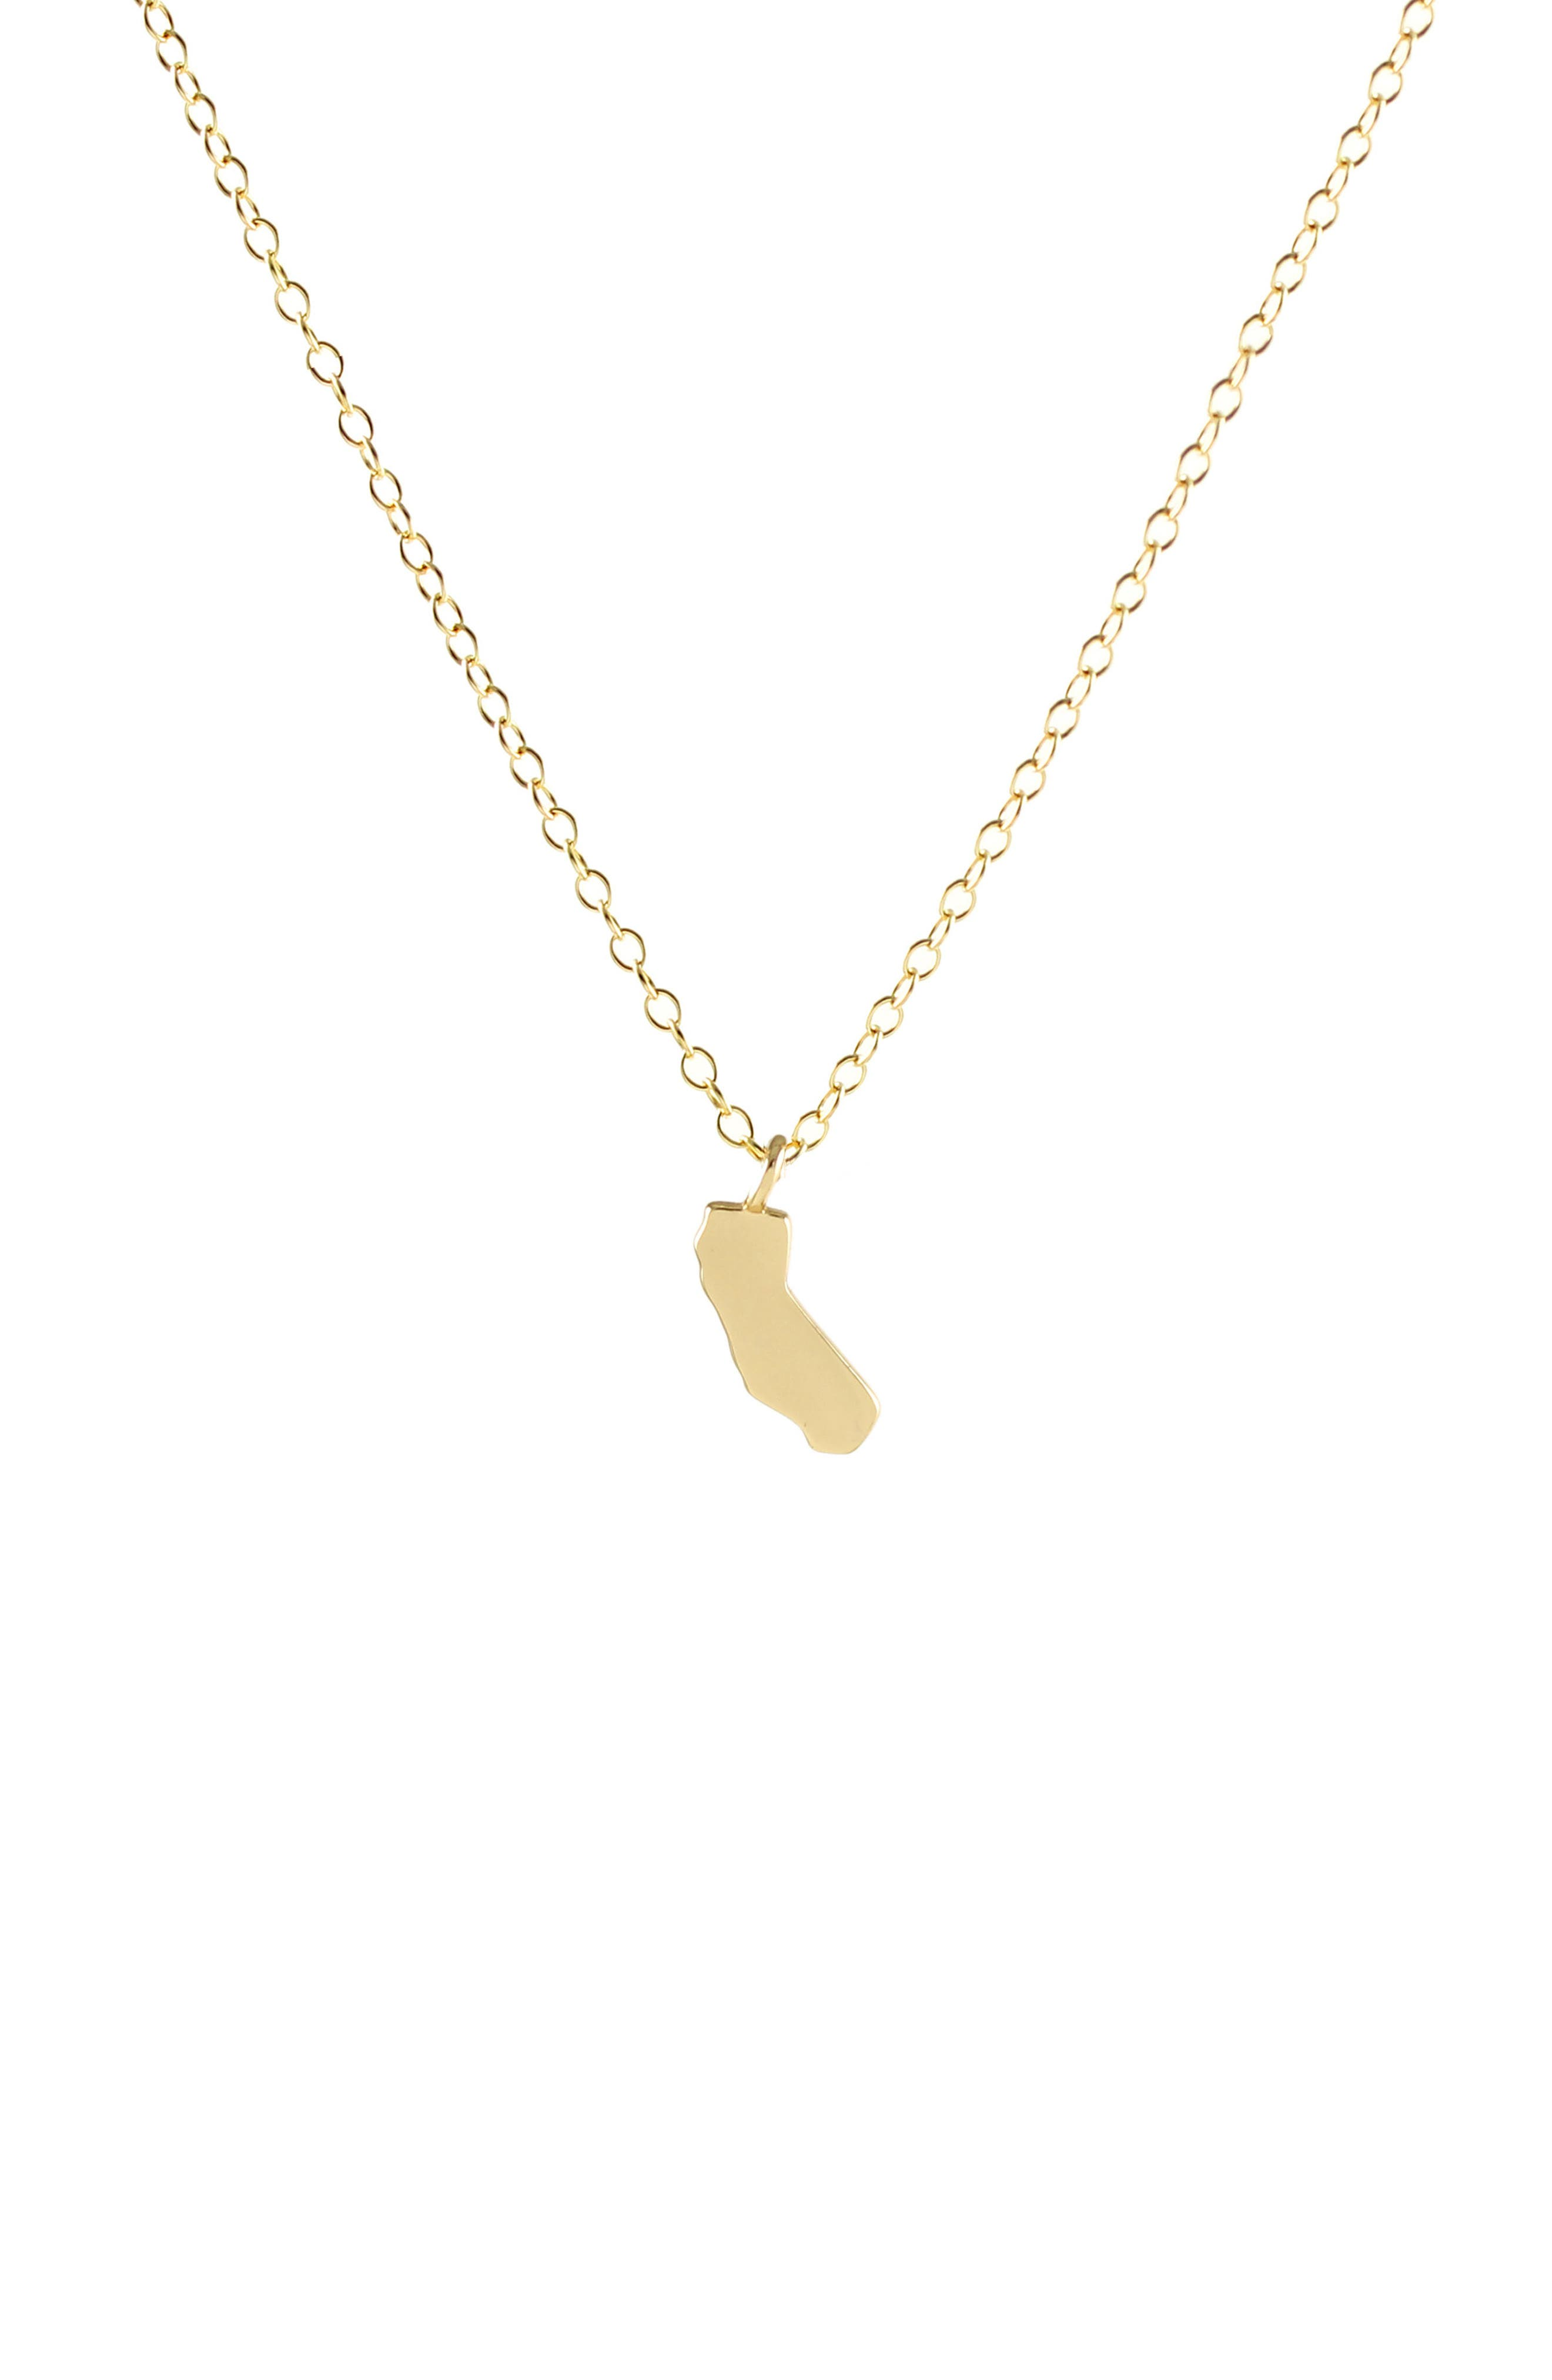 Solid State Charm Necklace,                             Main thumbnail 1, color,                             CALIFORNIA - GOLD